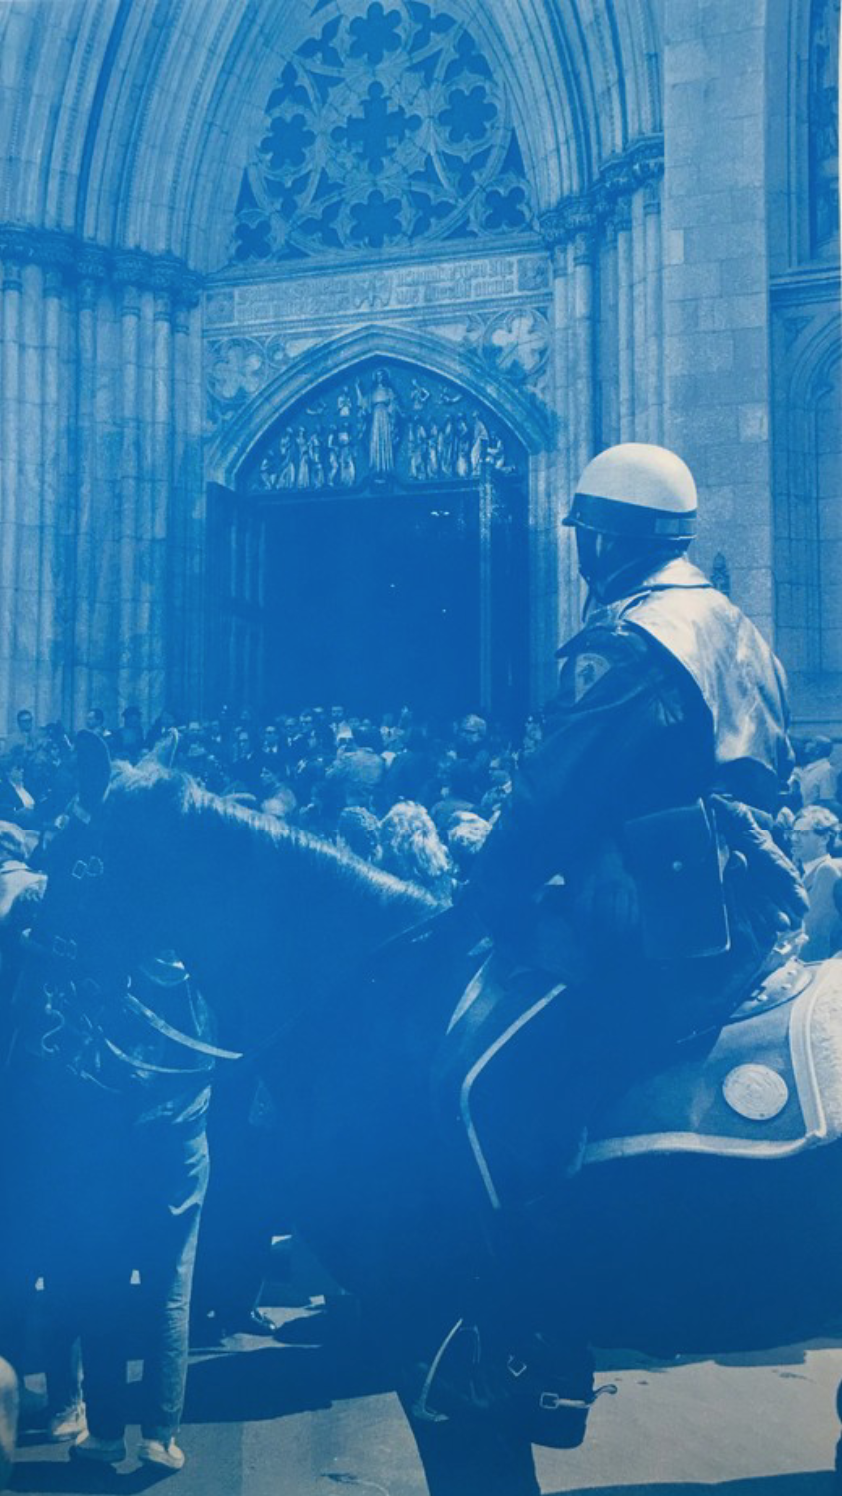 Christophe Von Hohenberg   Andy Warhol Memorial, 1987:    Mounted Patrol at St. Patrick's Cathedral   Digital Print on Hahnemühle 55.9 x 43.2 cm